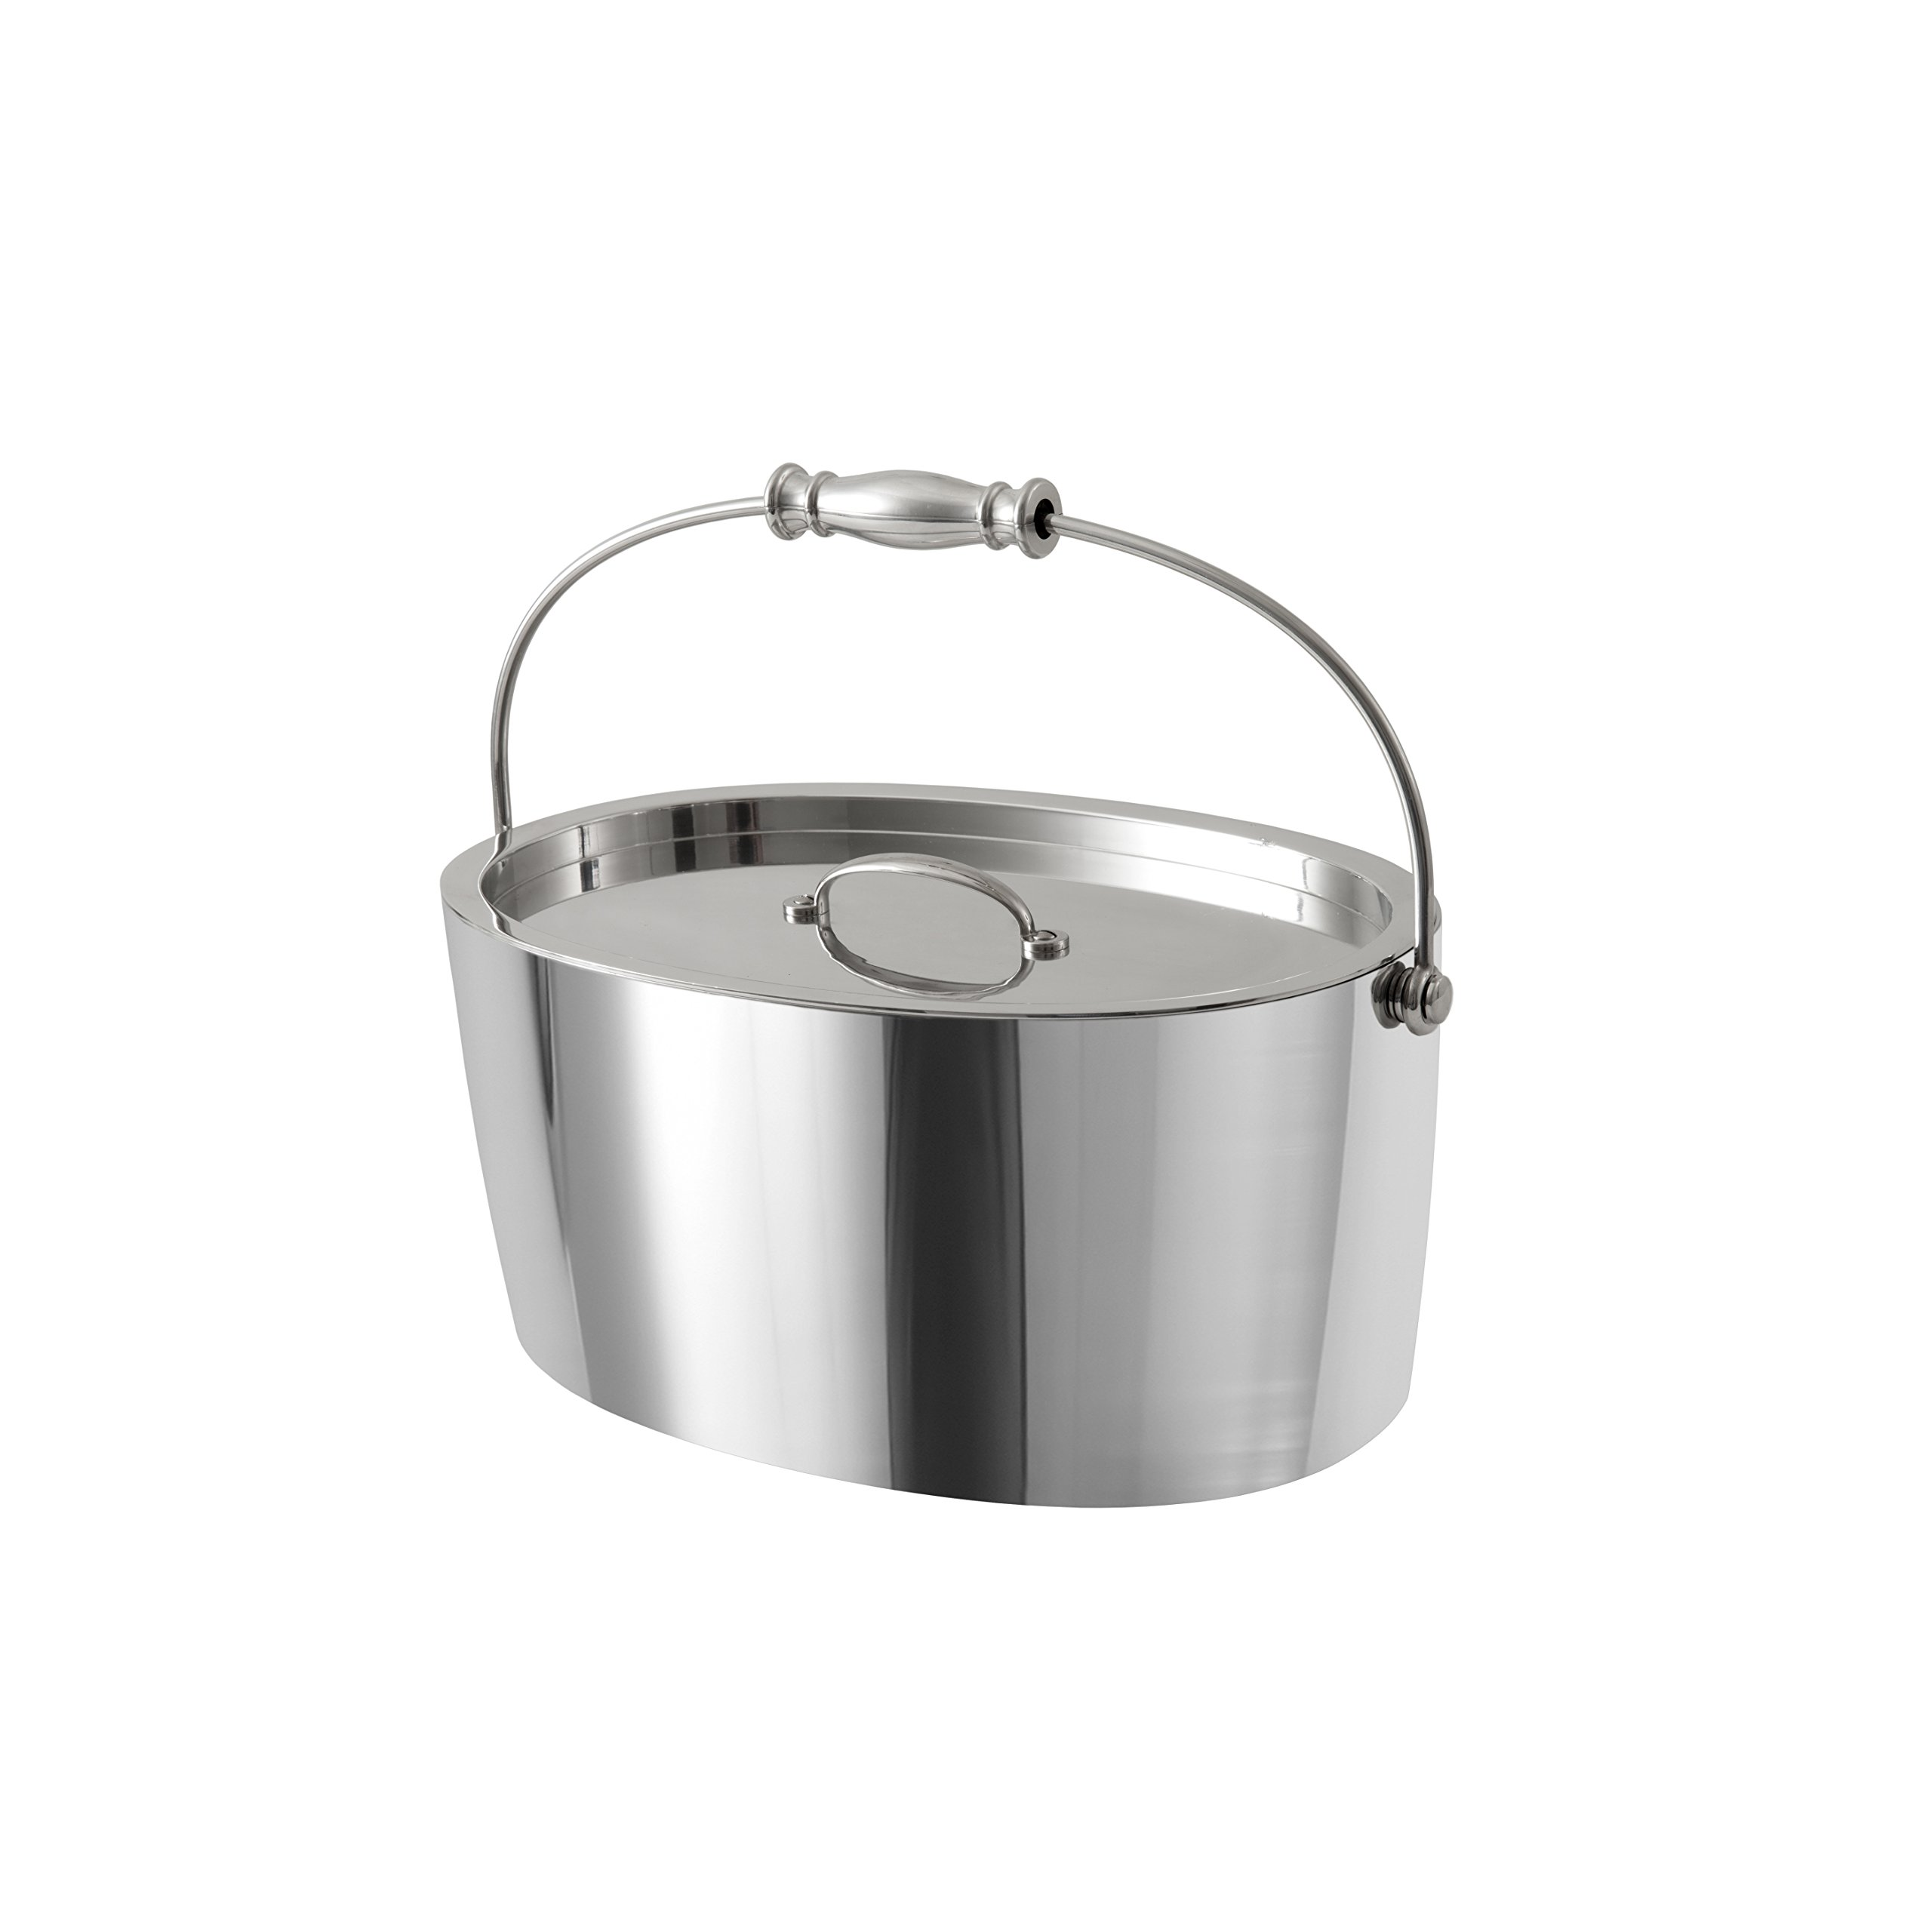 Crafthouse by Fortessa Professional Metal Barware/Bar Tools by Charles Joly, 12'' x 5.25'' Stainless Steel Ice Bucket with Handle and Drain Tray by Crafthouse by Fortessa